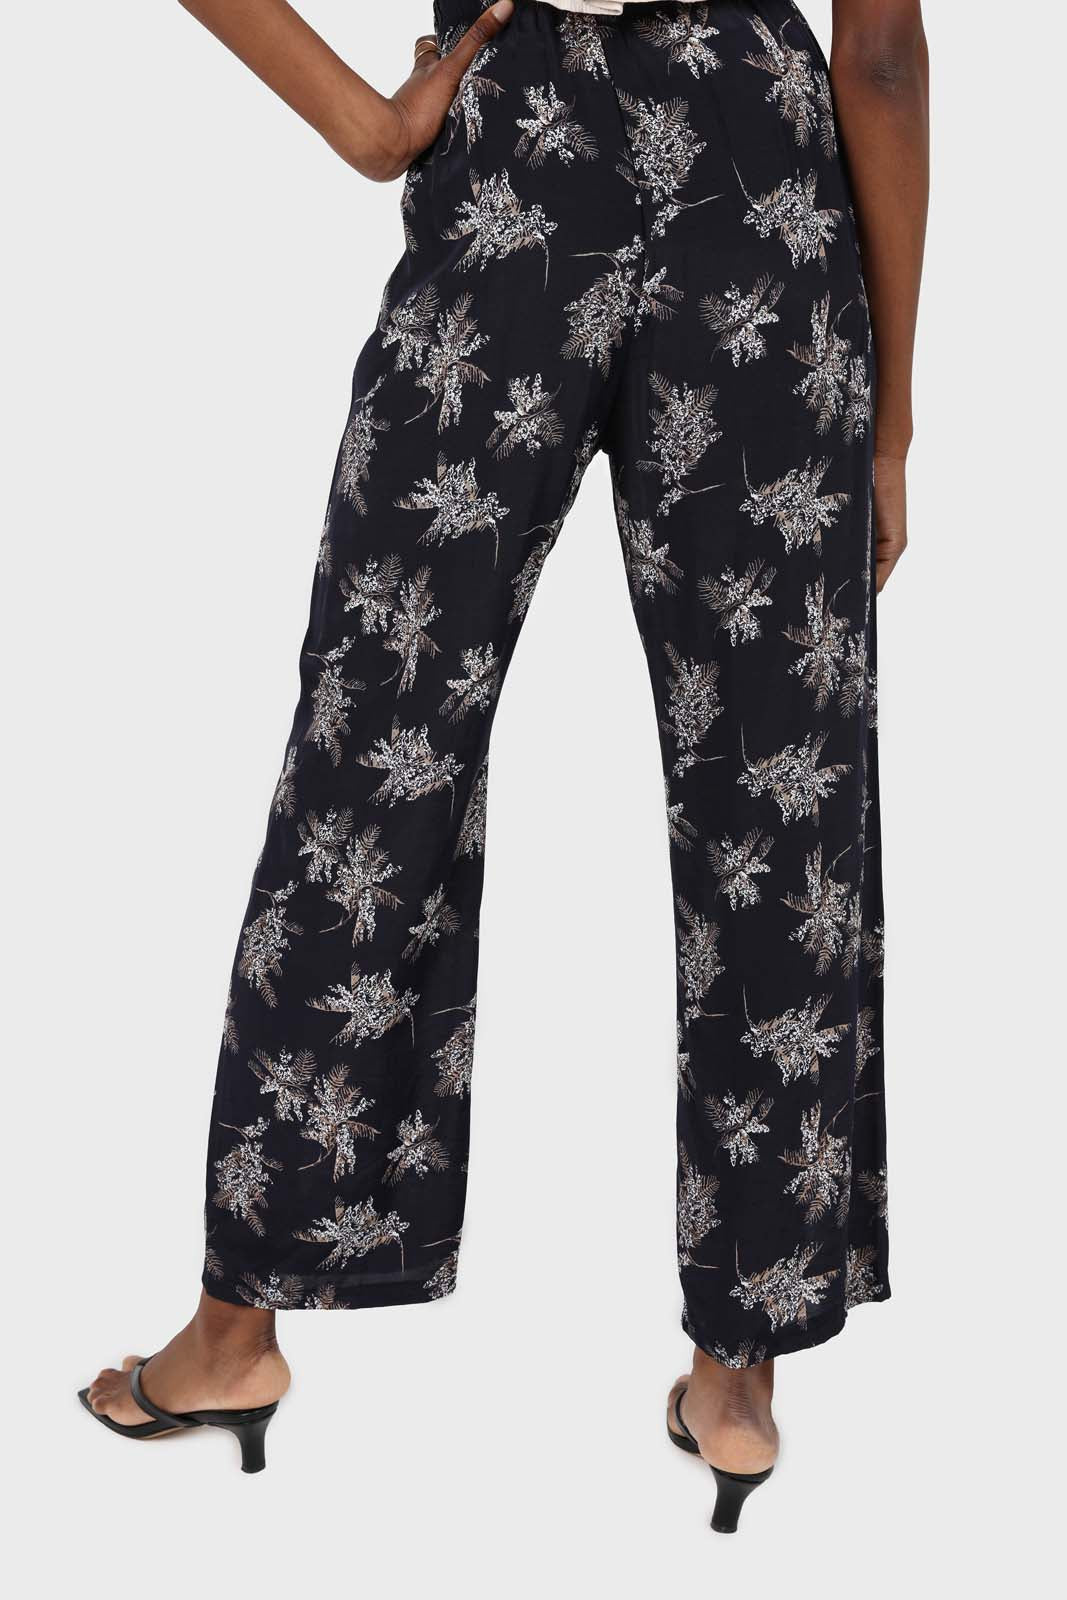 Navy and white floral wide leg trousers4